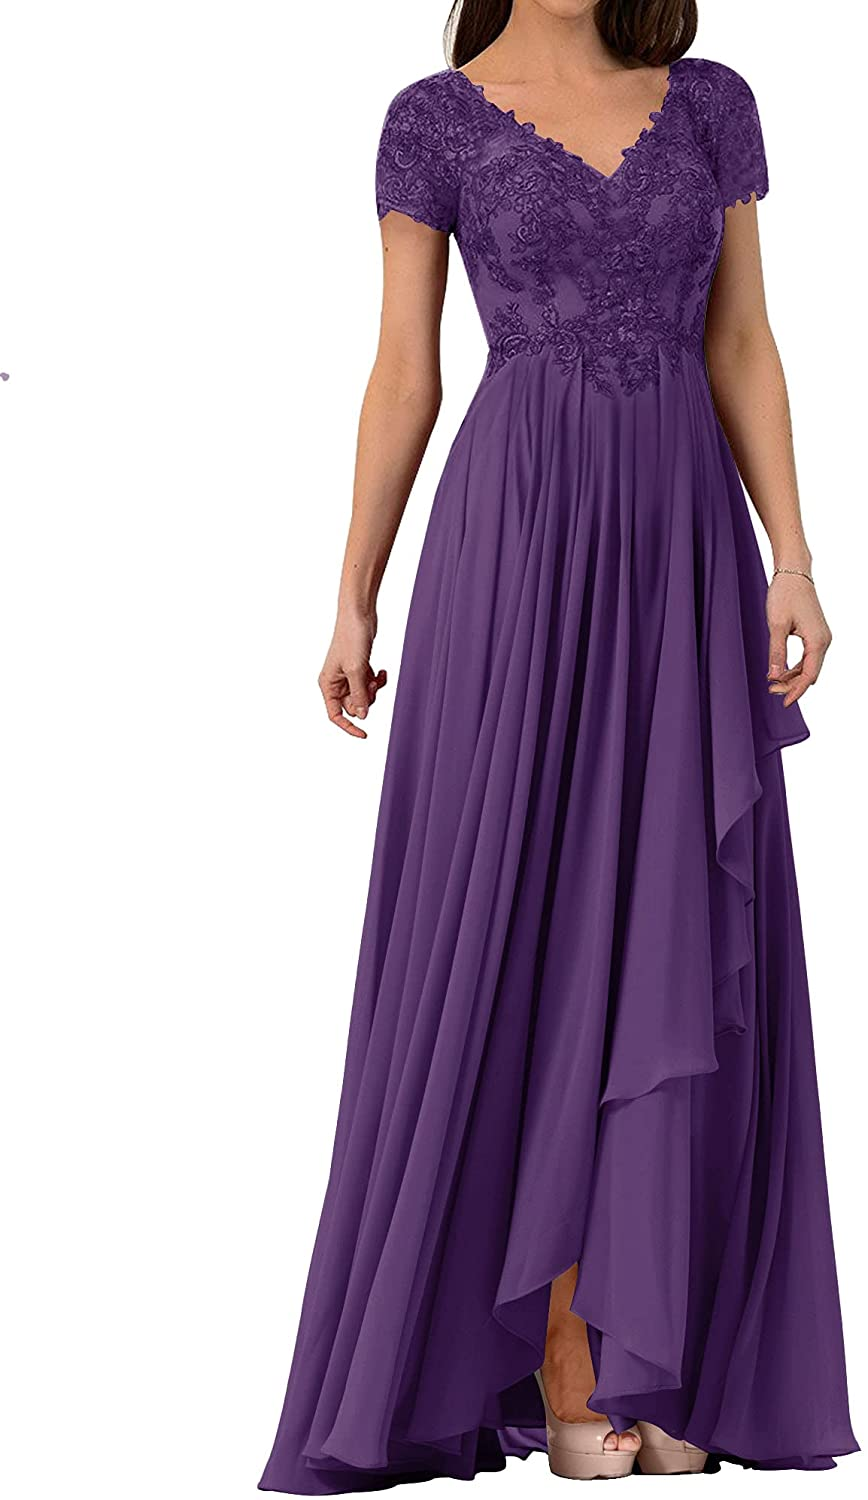 Mother of The Bride Dress Lace Formal Evening Gowns Chiffon Wedding Party Dress Short Sleeves